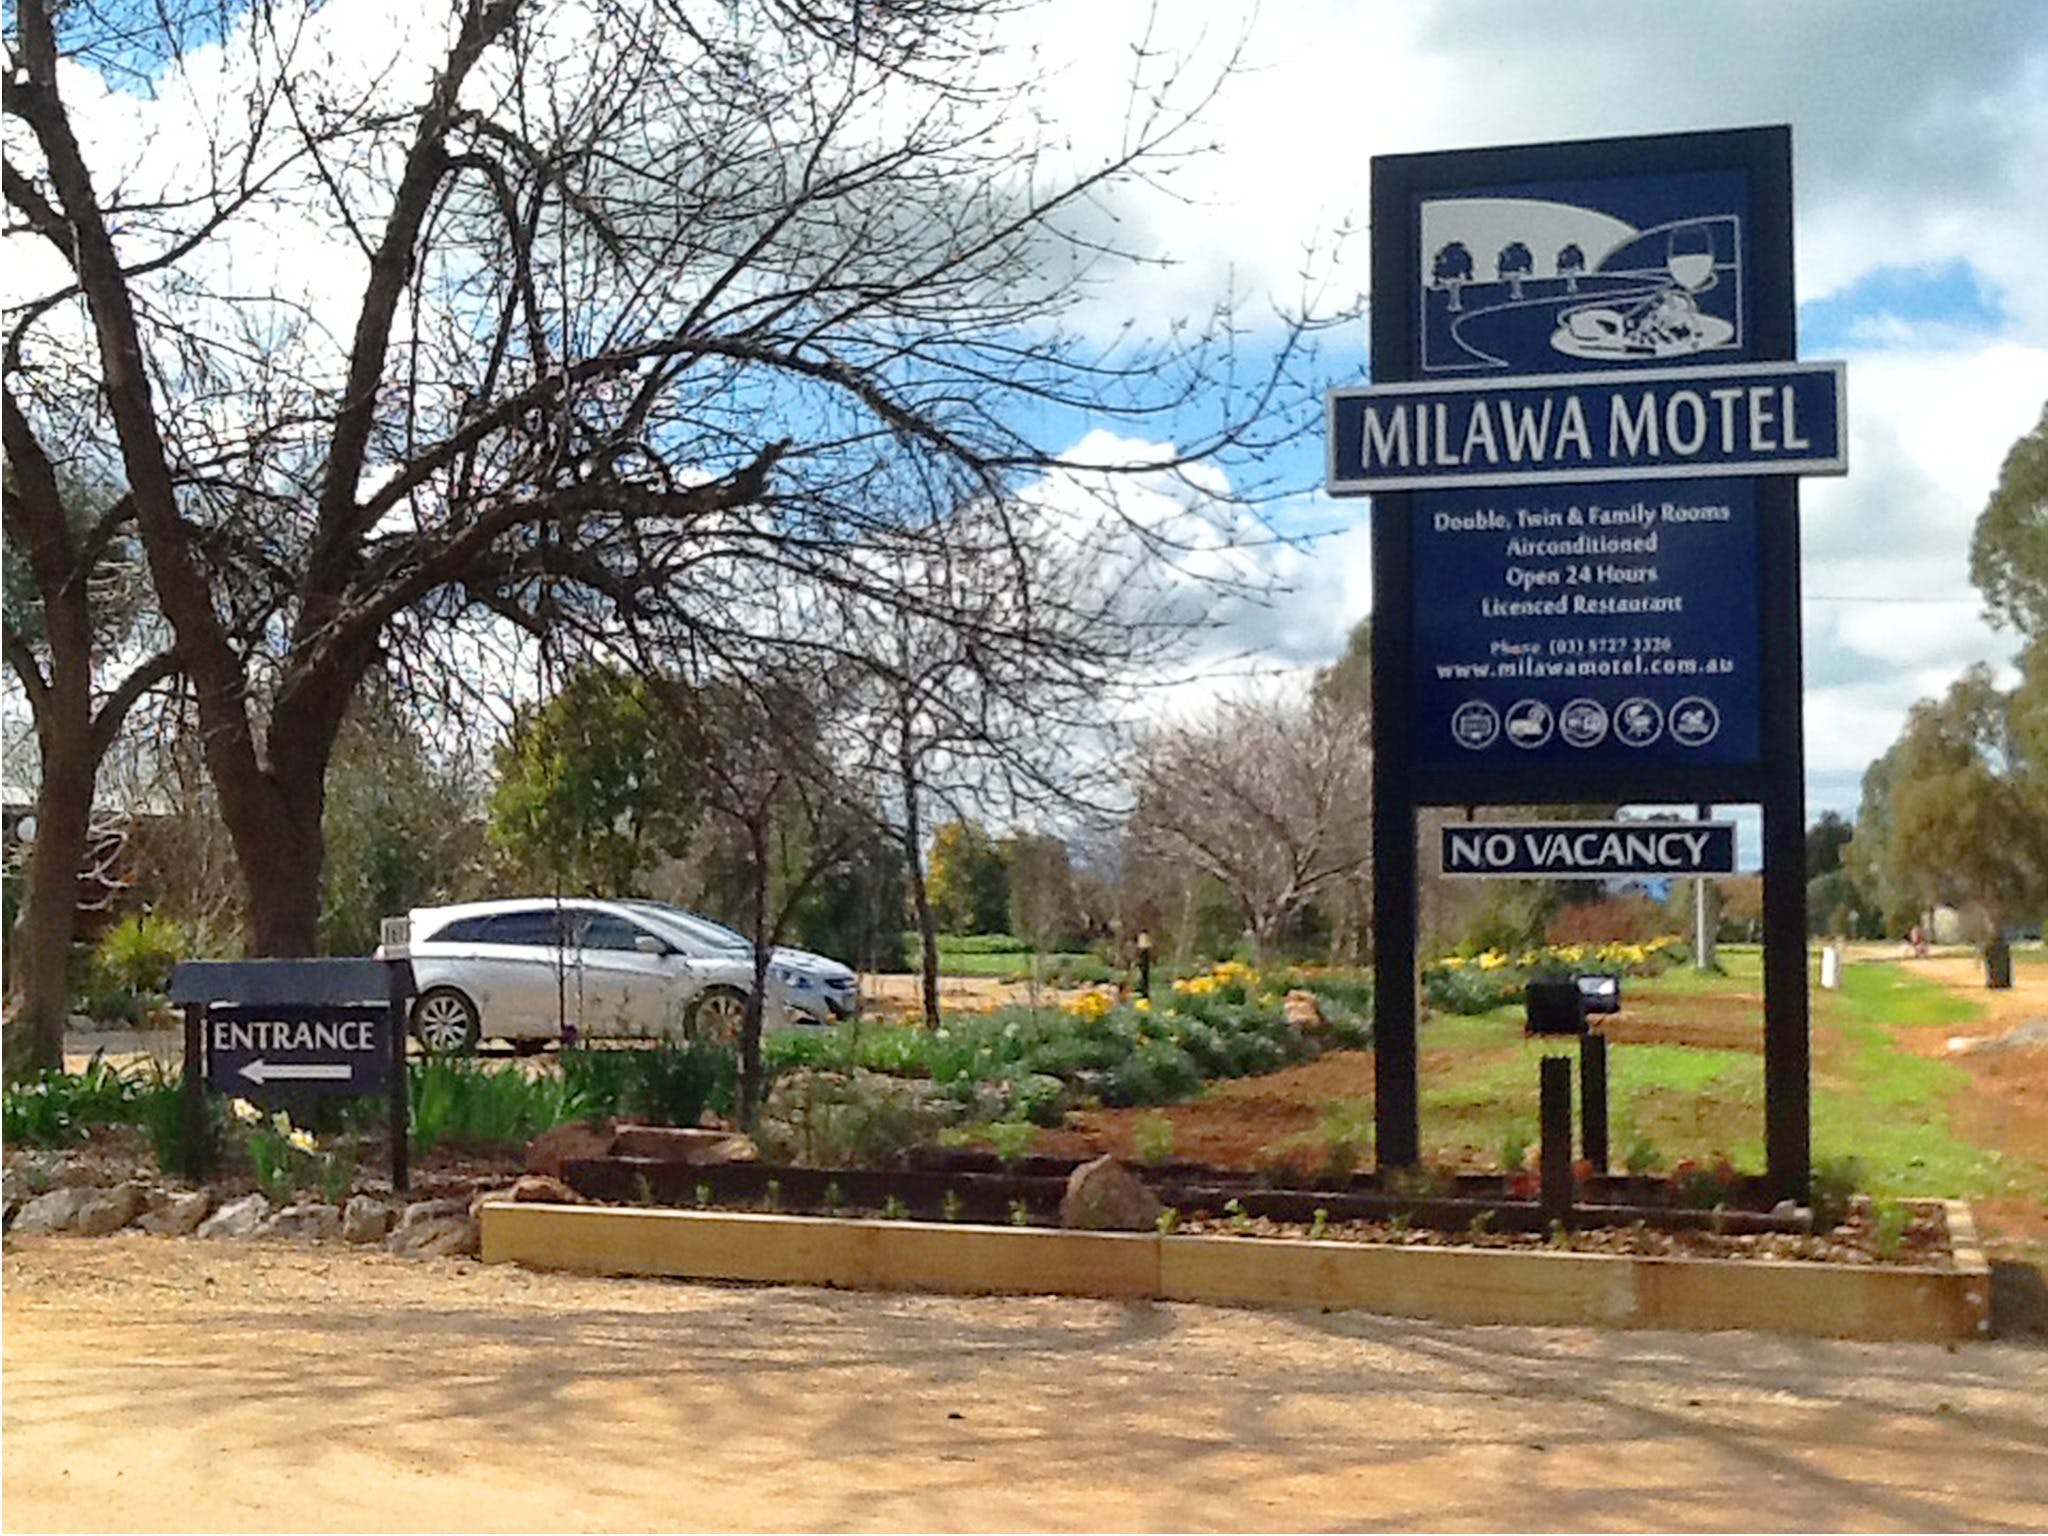 Milawa Motel - South Australia Travel